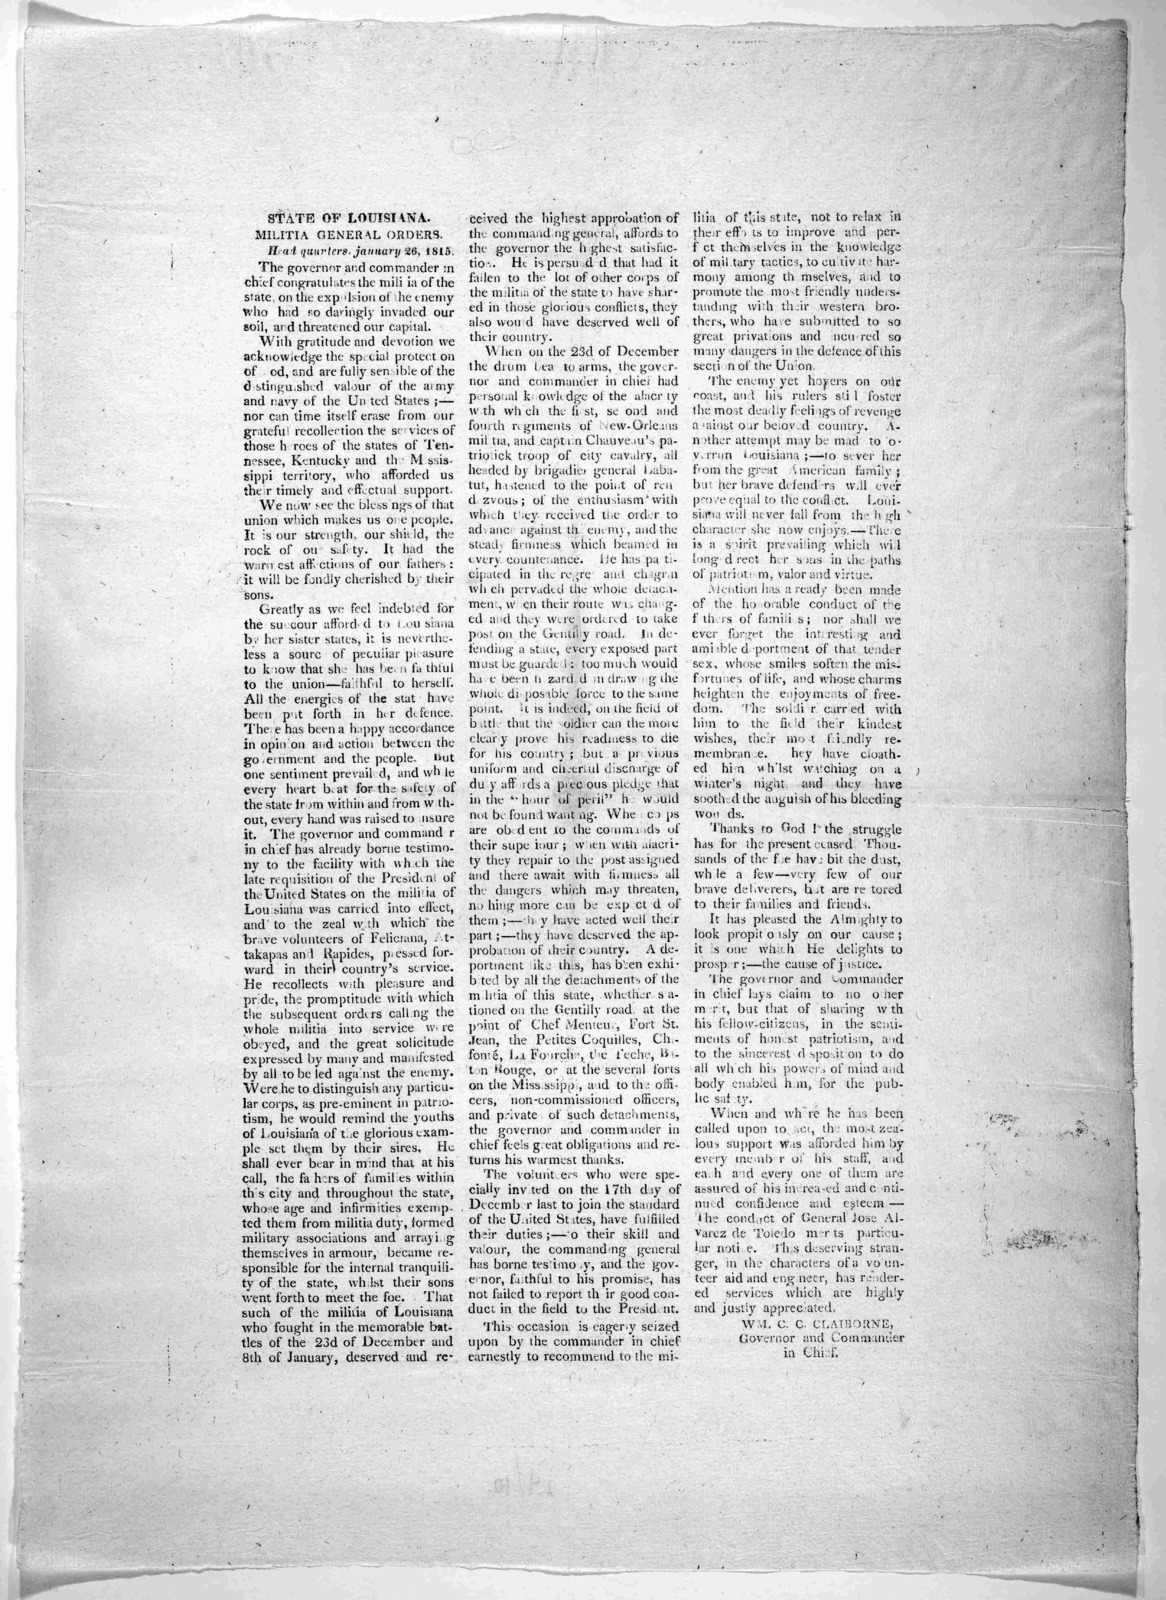 State of Louisiana. Militia general orders Headquarters, January 26, 1815. The governor and commander in chief congratulates the militia of the state on the expulsion of the enemy who had so daringly invaded our soil and threatened our capital .